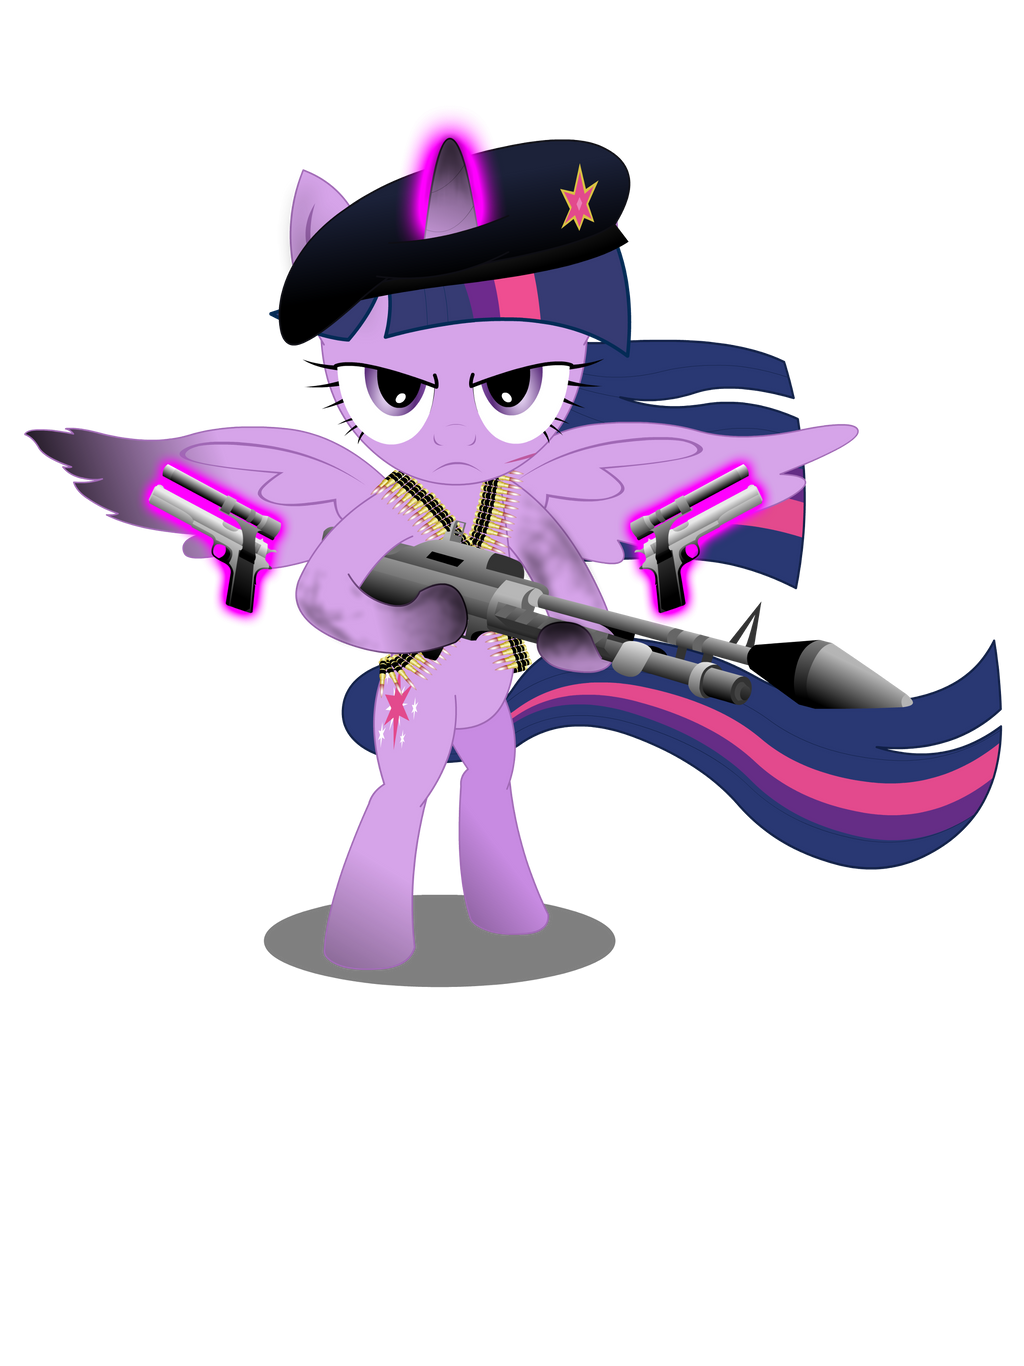 Gunner Twilight Sparkle (Shirt design) by GoneIn10Seconds